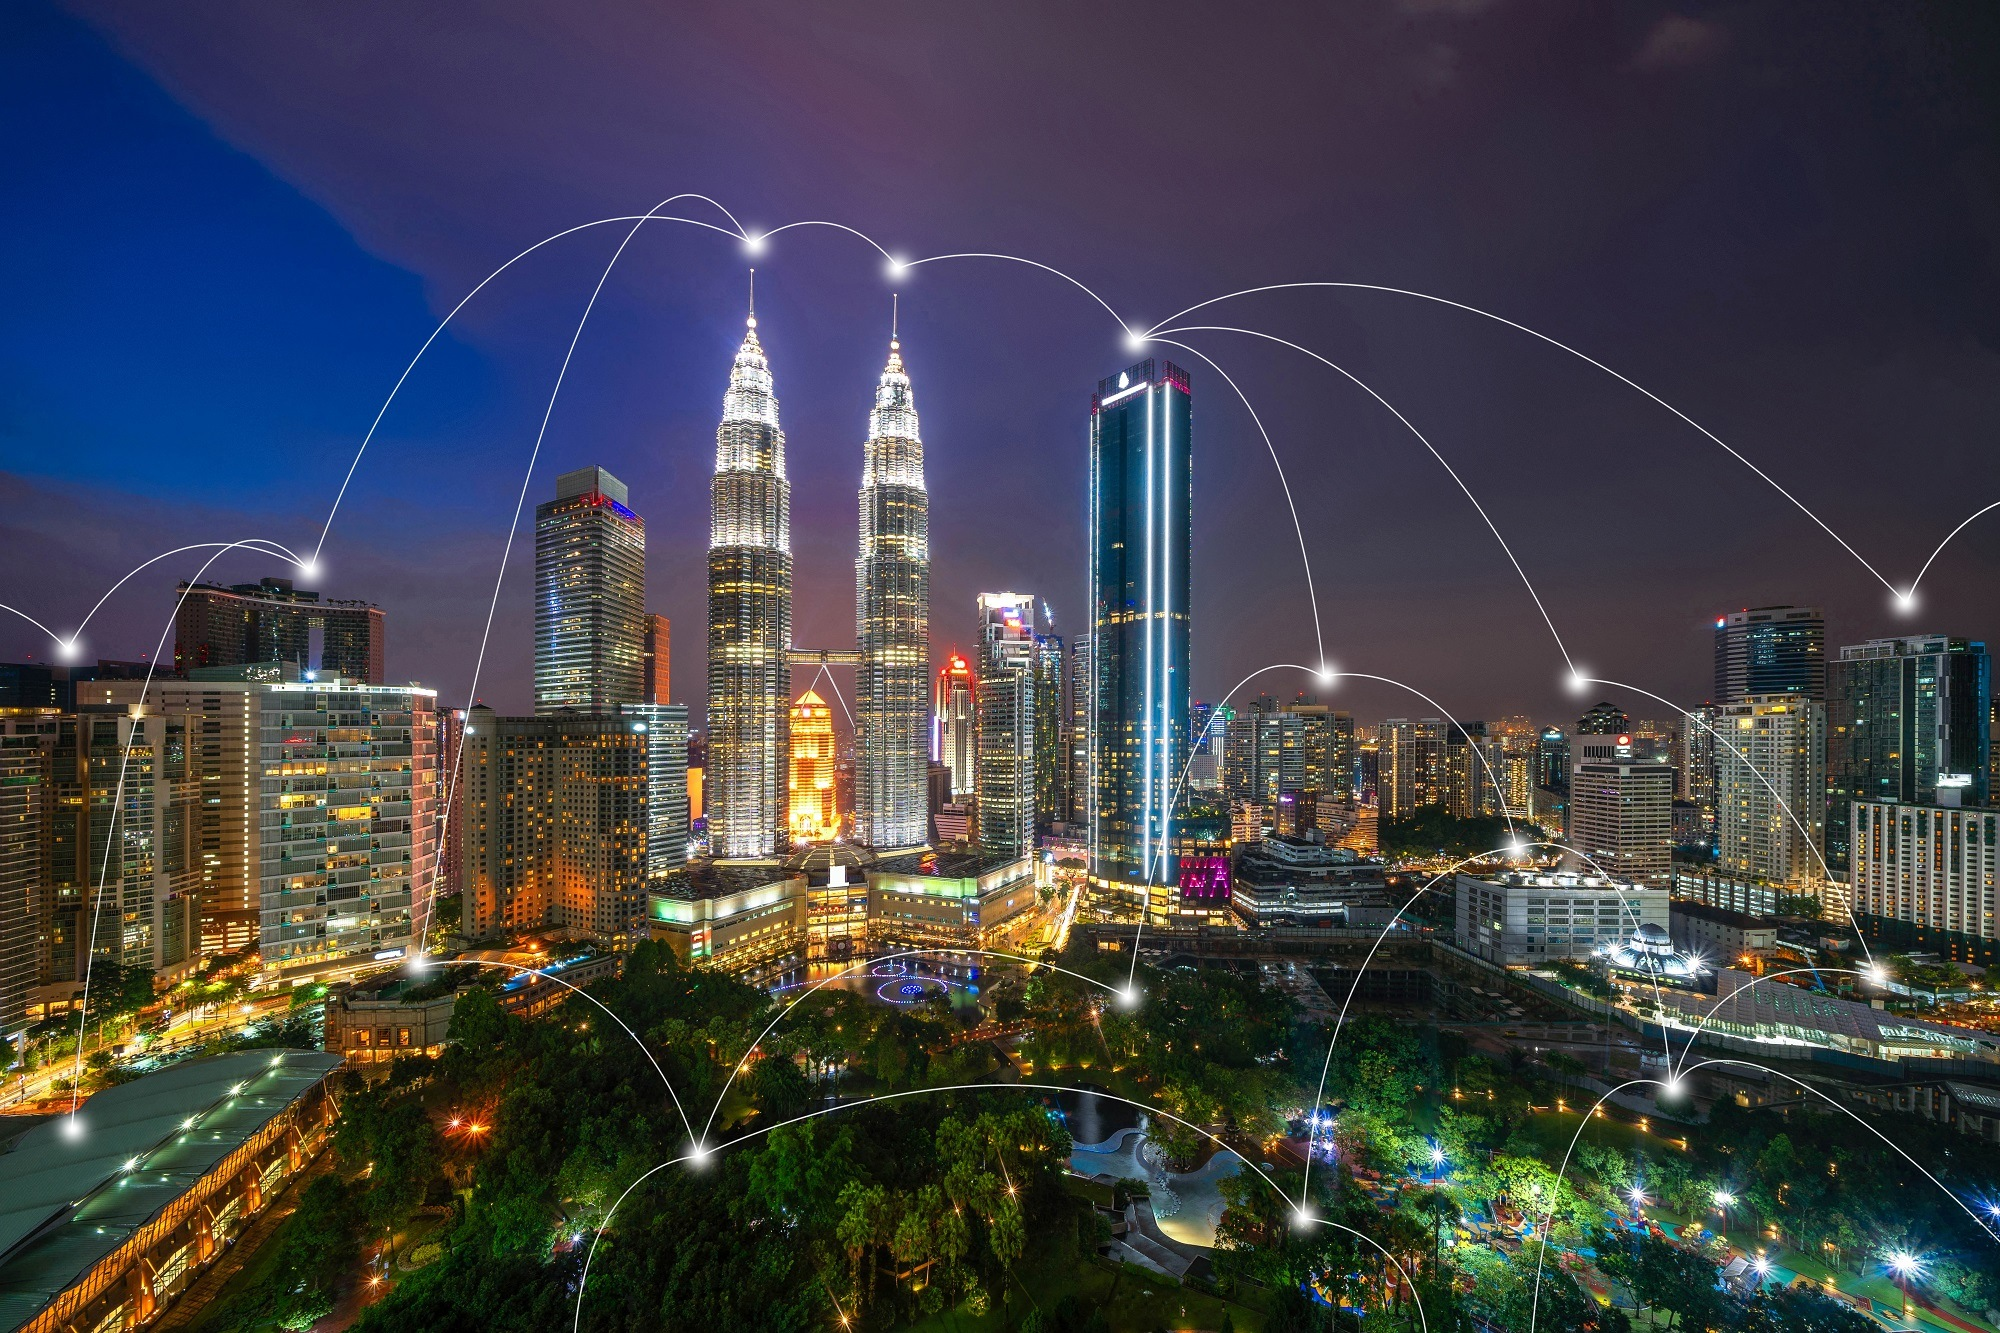 Digital network connection lines of Kuala Lumpur Downtown, Malaysia. Financial district and business centers in smart city in technology concept. Skyscraper and high-rise buildings at night